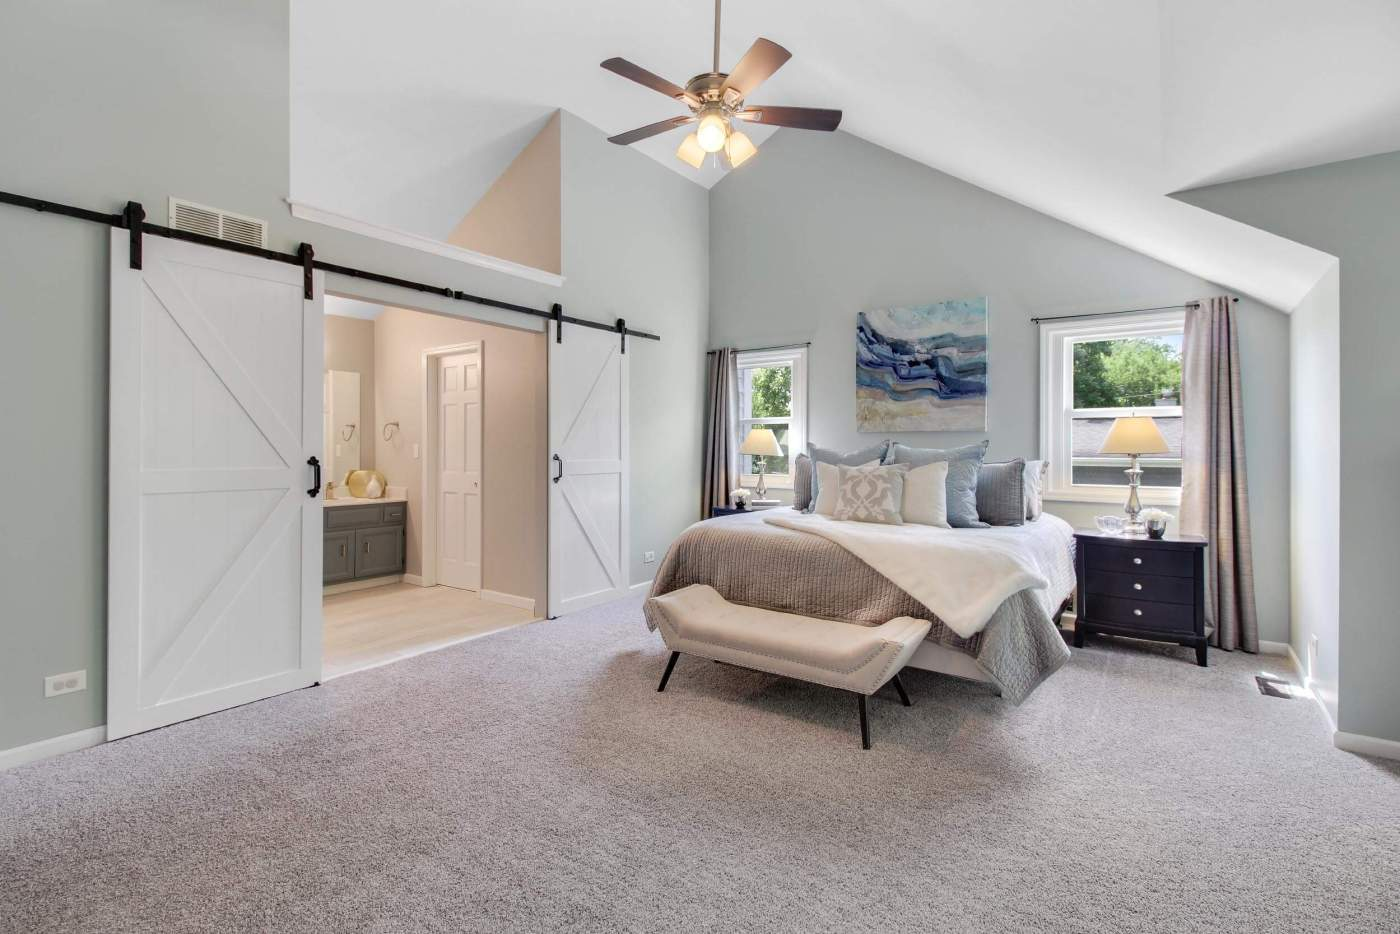 Master bedroom (primary bedroom) image, captured by a professional real estate photographer.